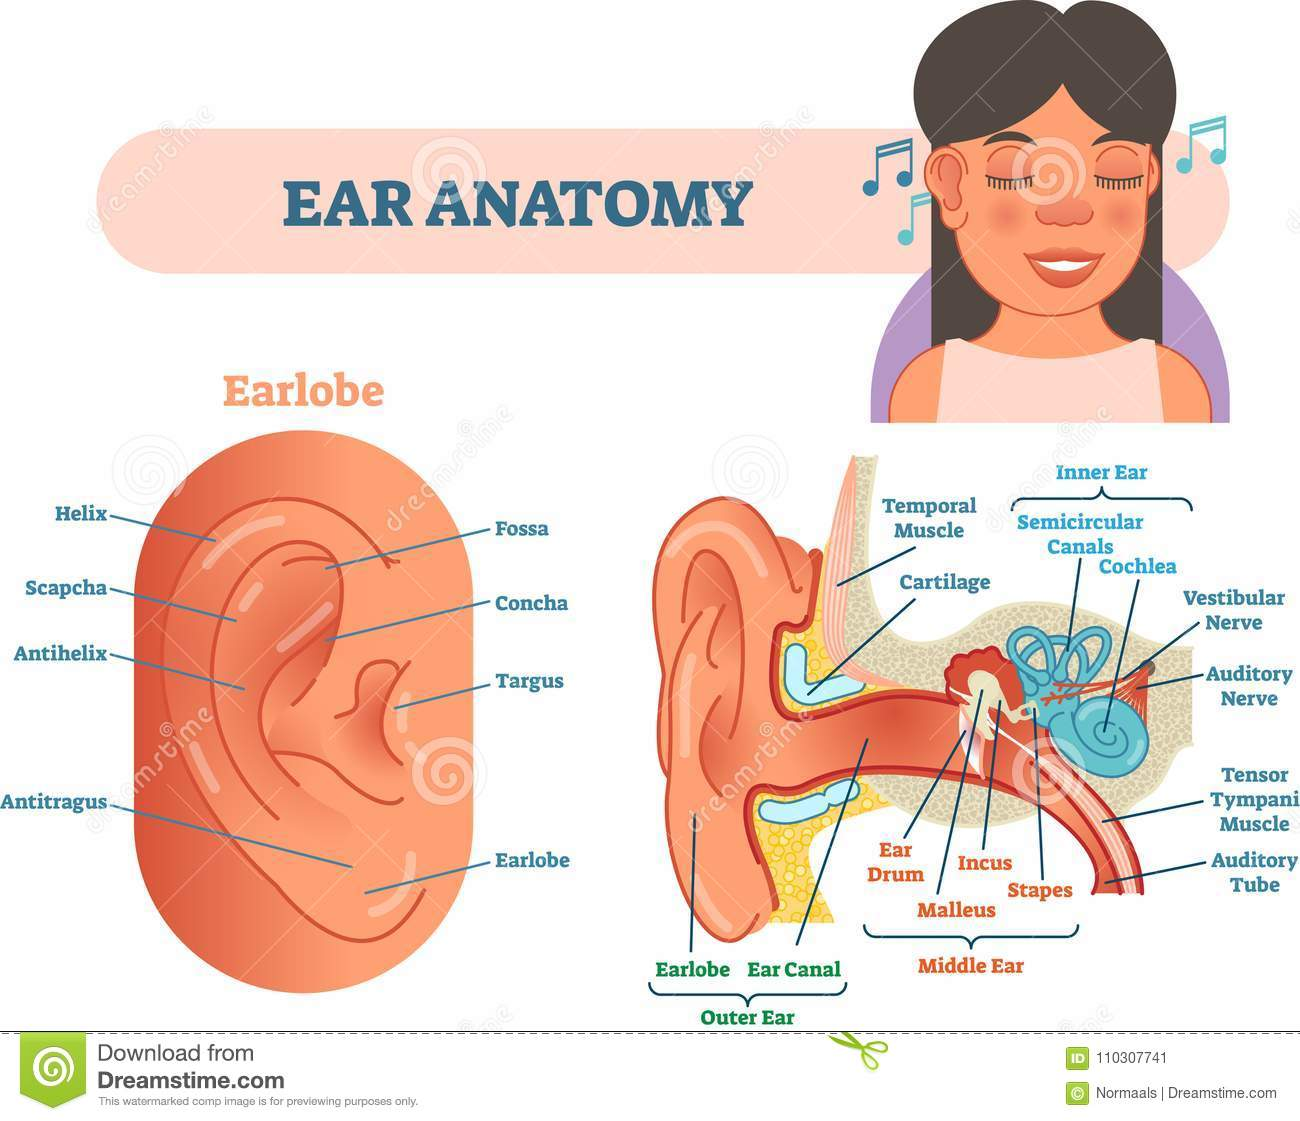 Ear Anatomy Medical Vector Illustration With Outer Middle And Inner